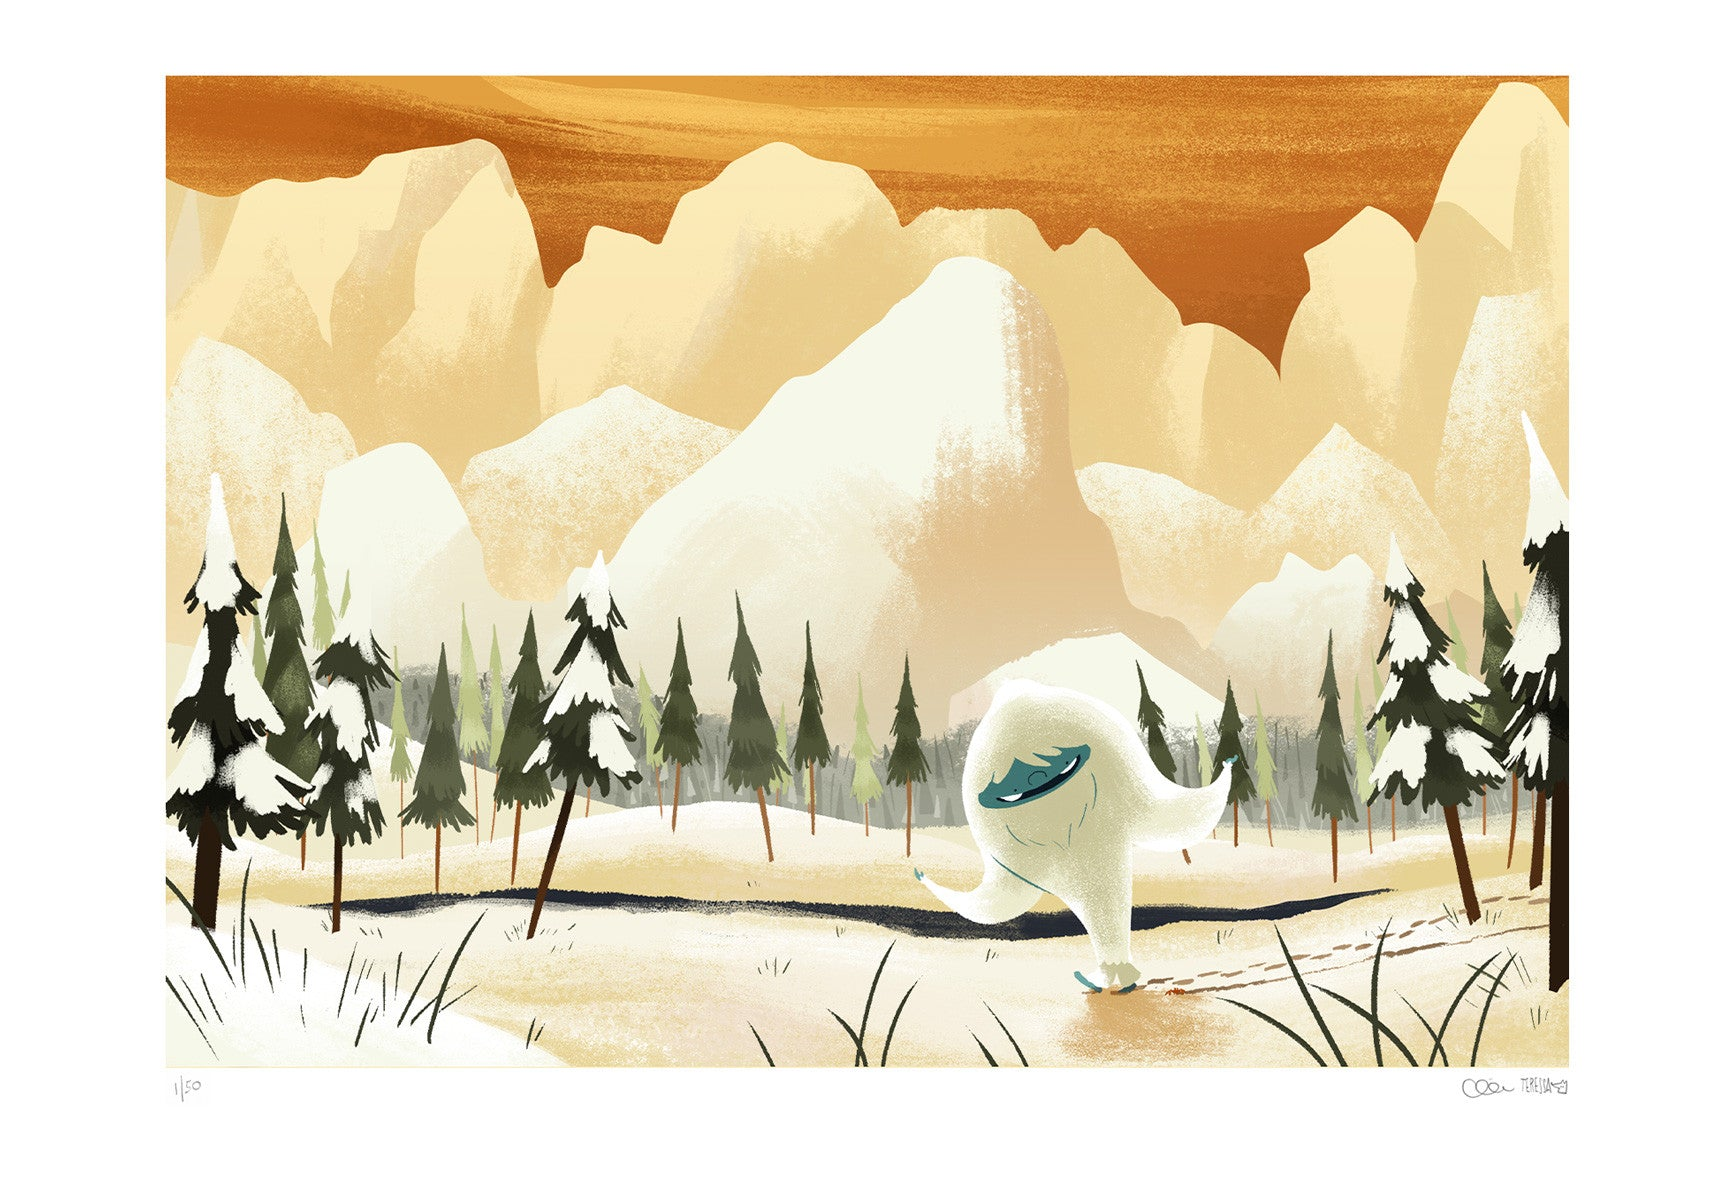 """Homeward Bound"" from The Abominable Norman - A3 Giclée Print"